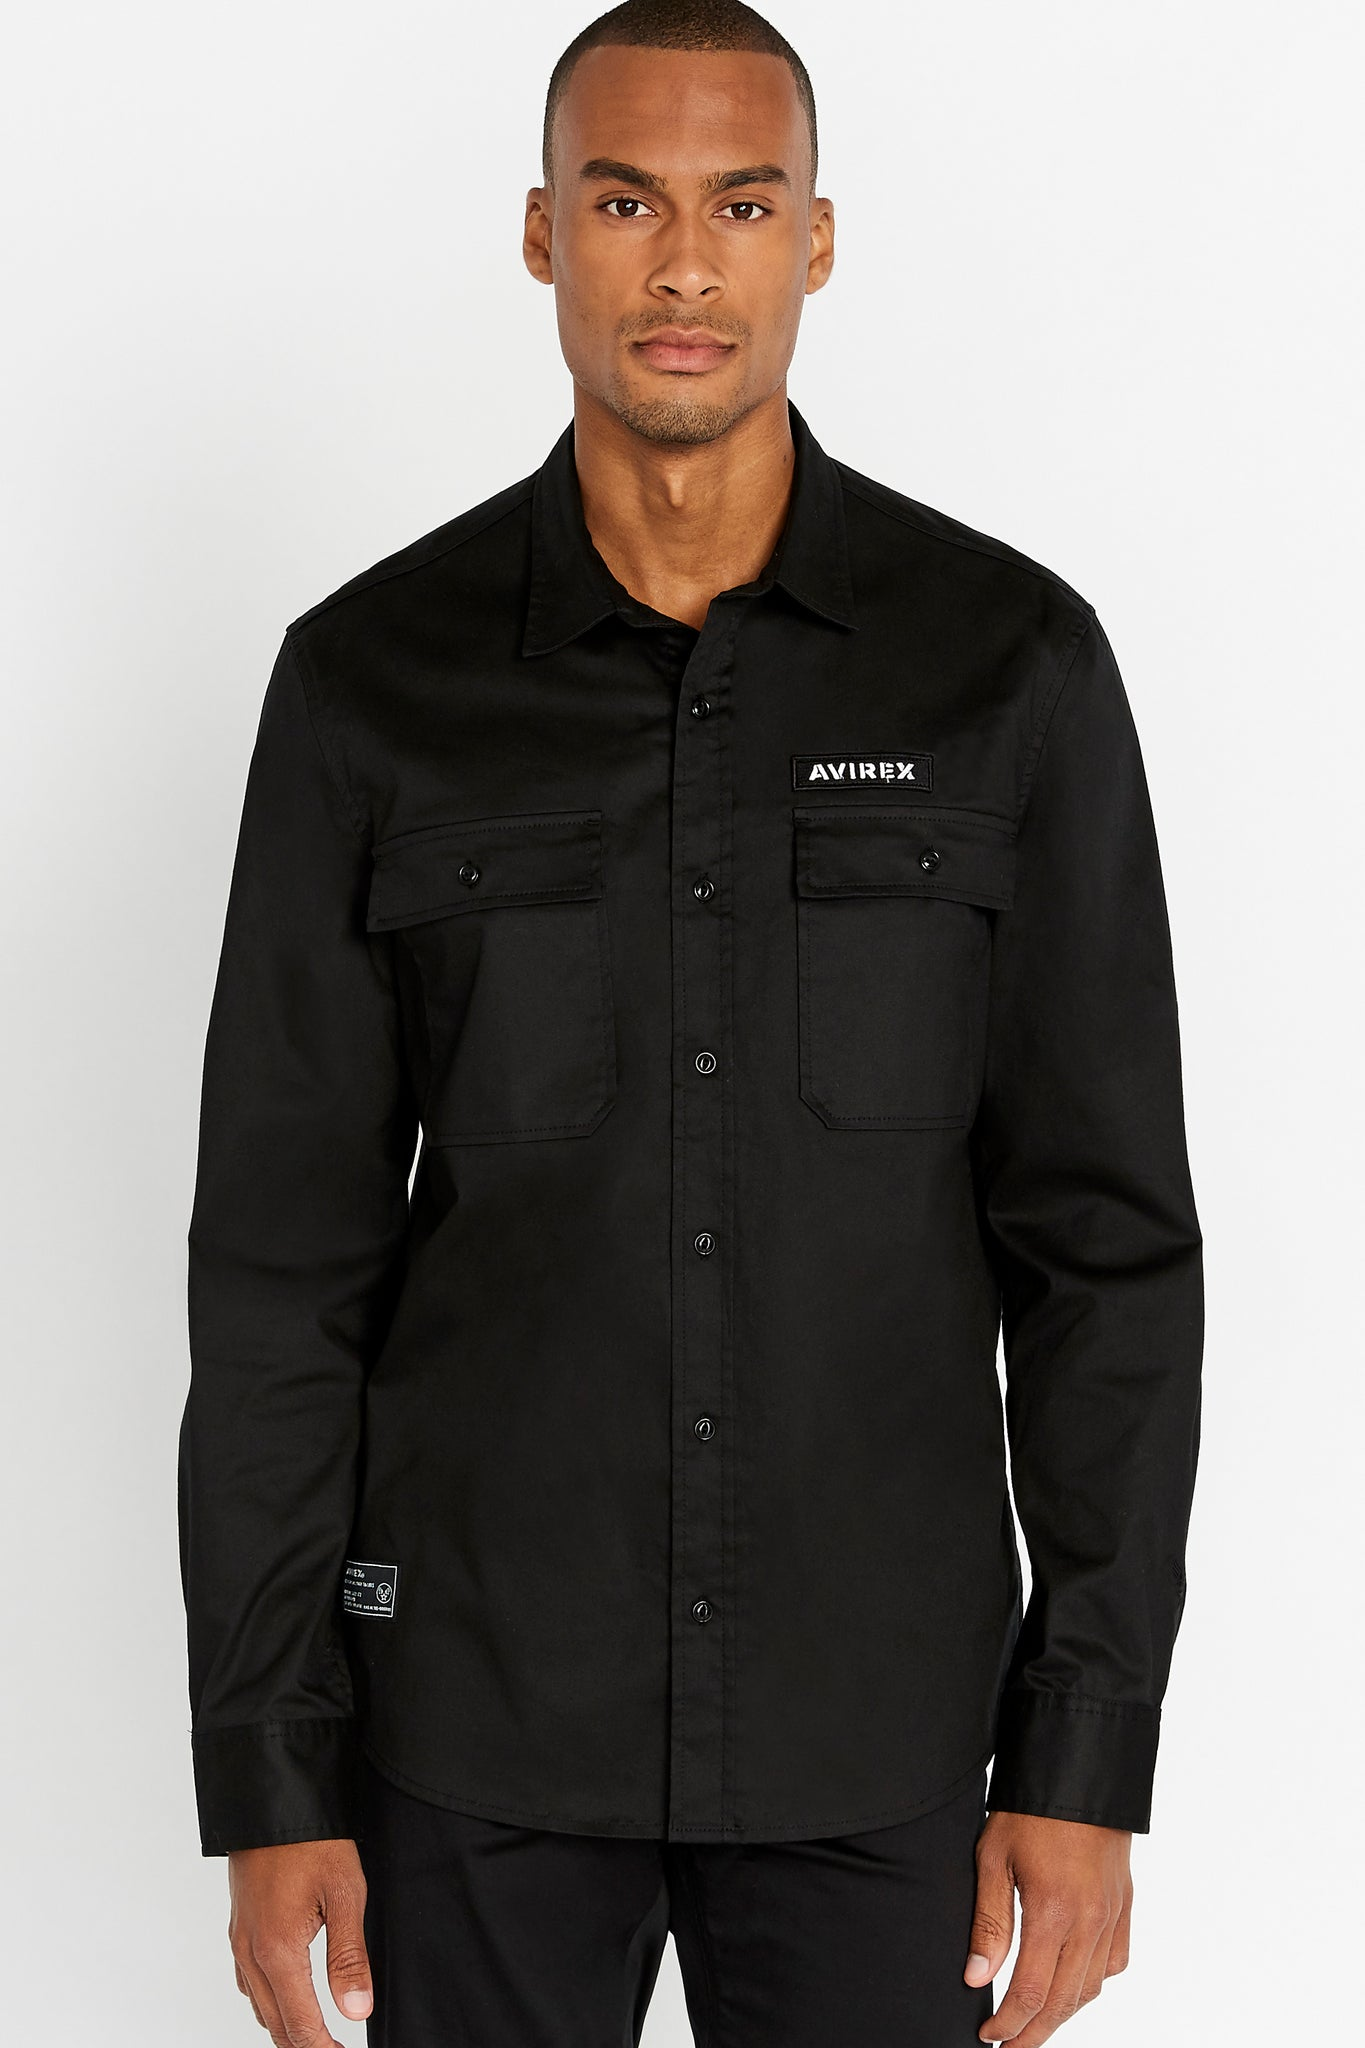 Men wearing a black long sleeve shirt with two front button-flap pockets white logo on left chest and white patch on right bottom corner